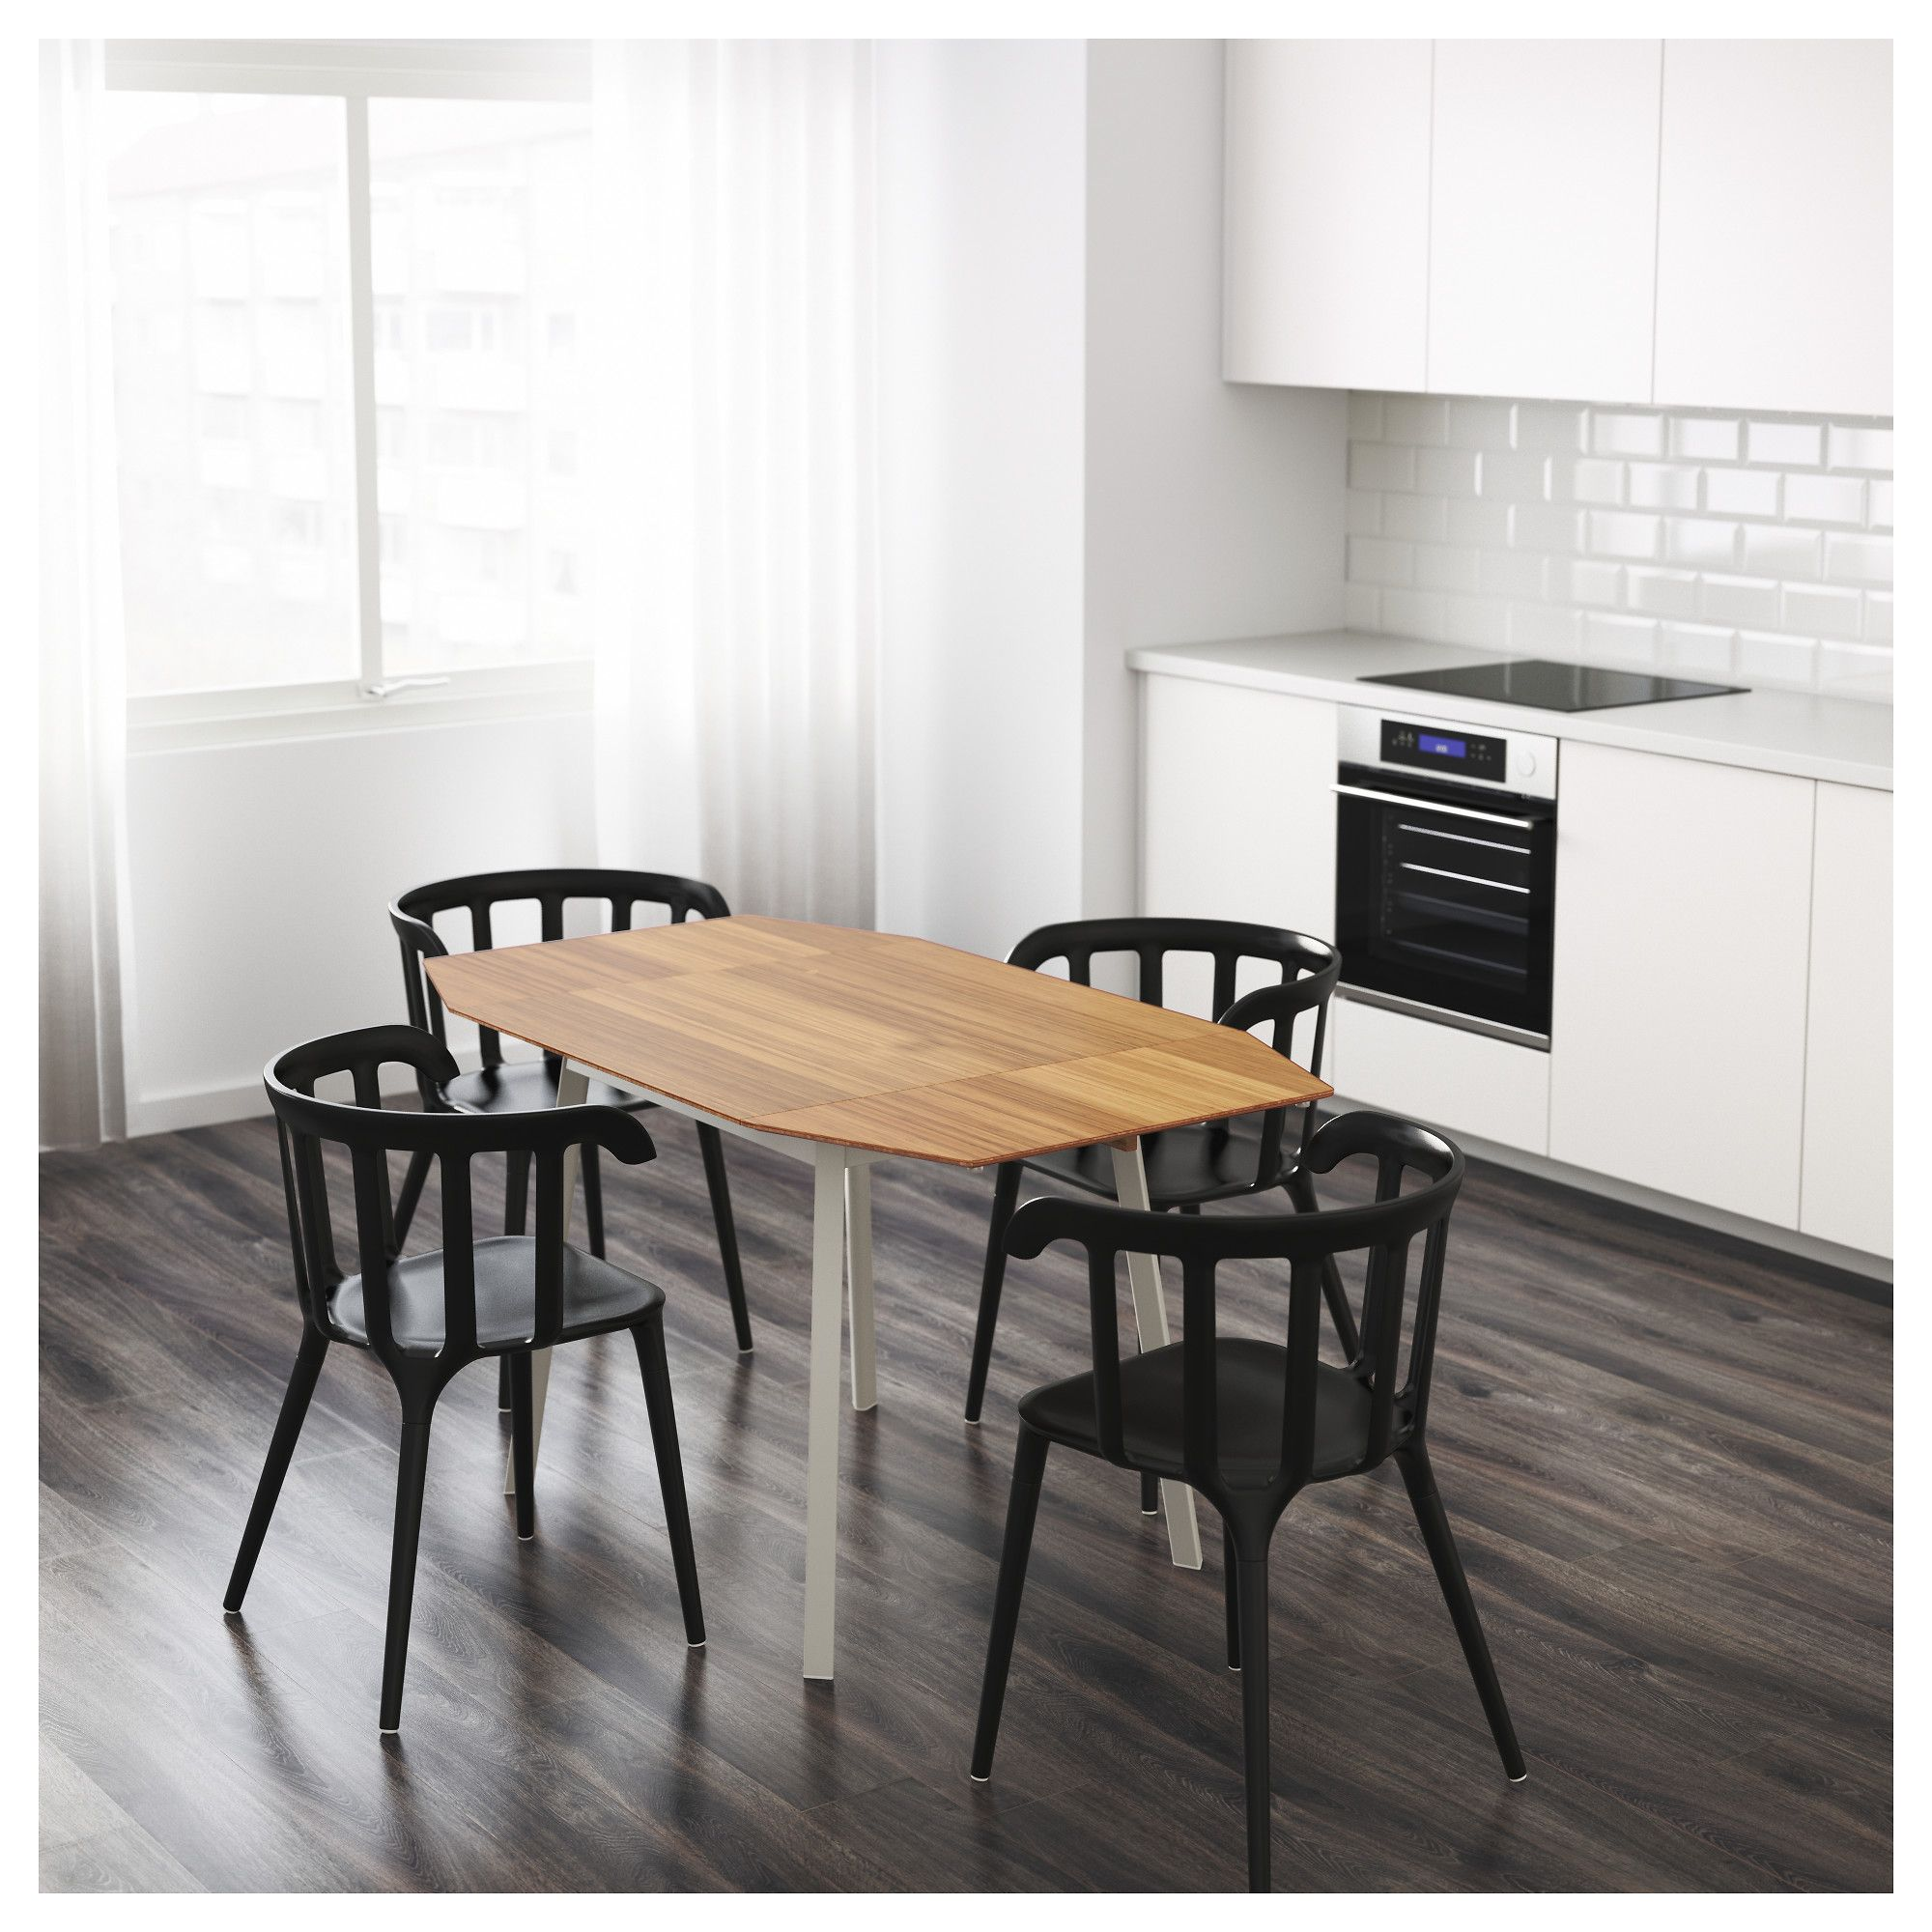 IKEA - PS 2012 Drop-leaf table bamboo, white nel 2018 | Dining ...